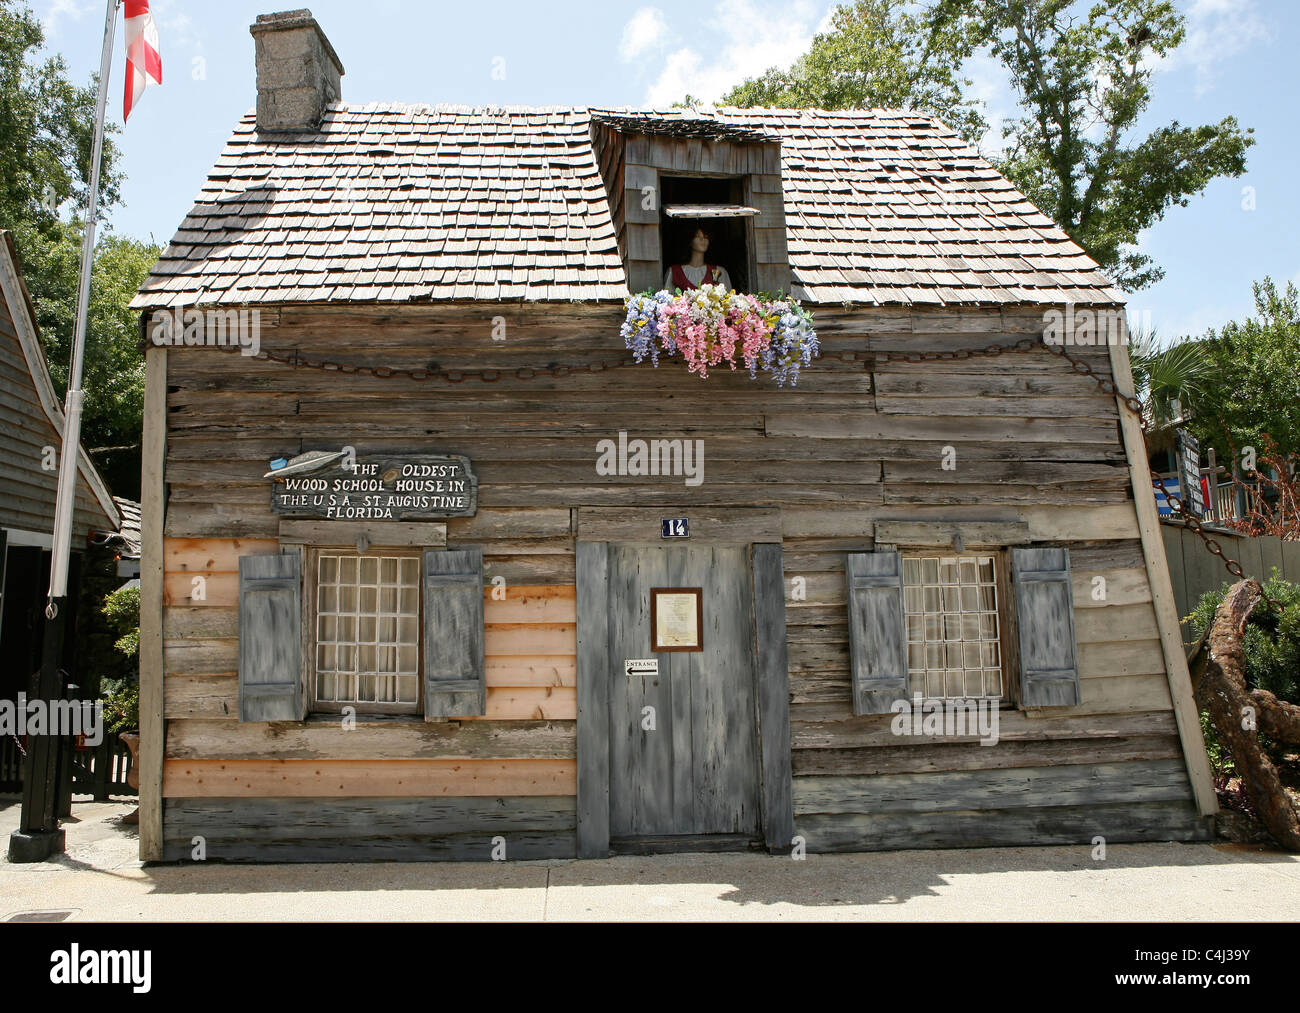 The oldest school house in Florida, USA, situated in St Augustine. - Stock Image